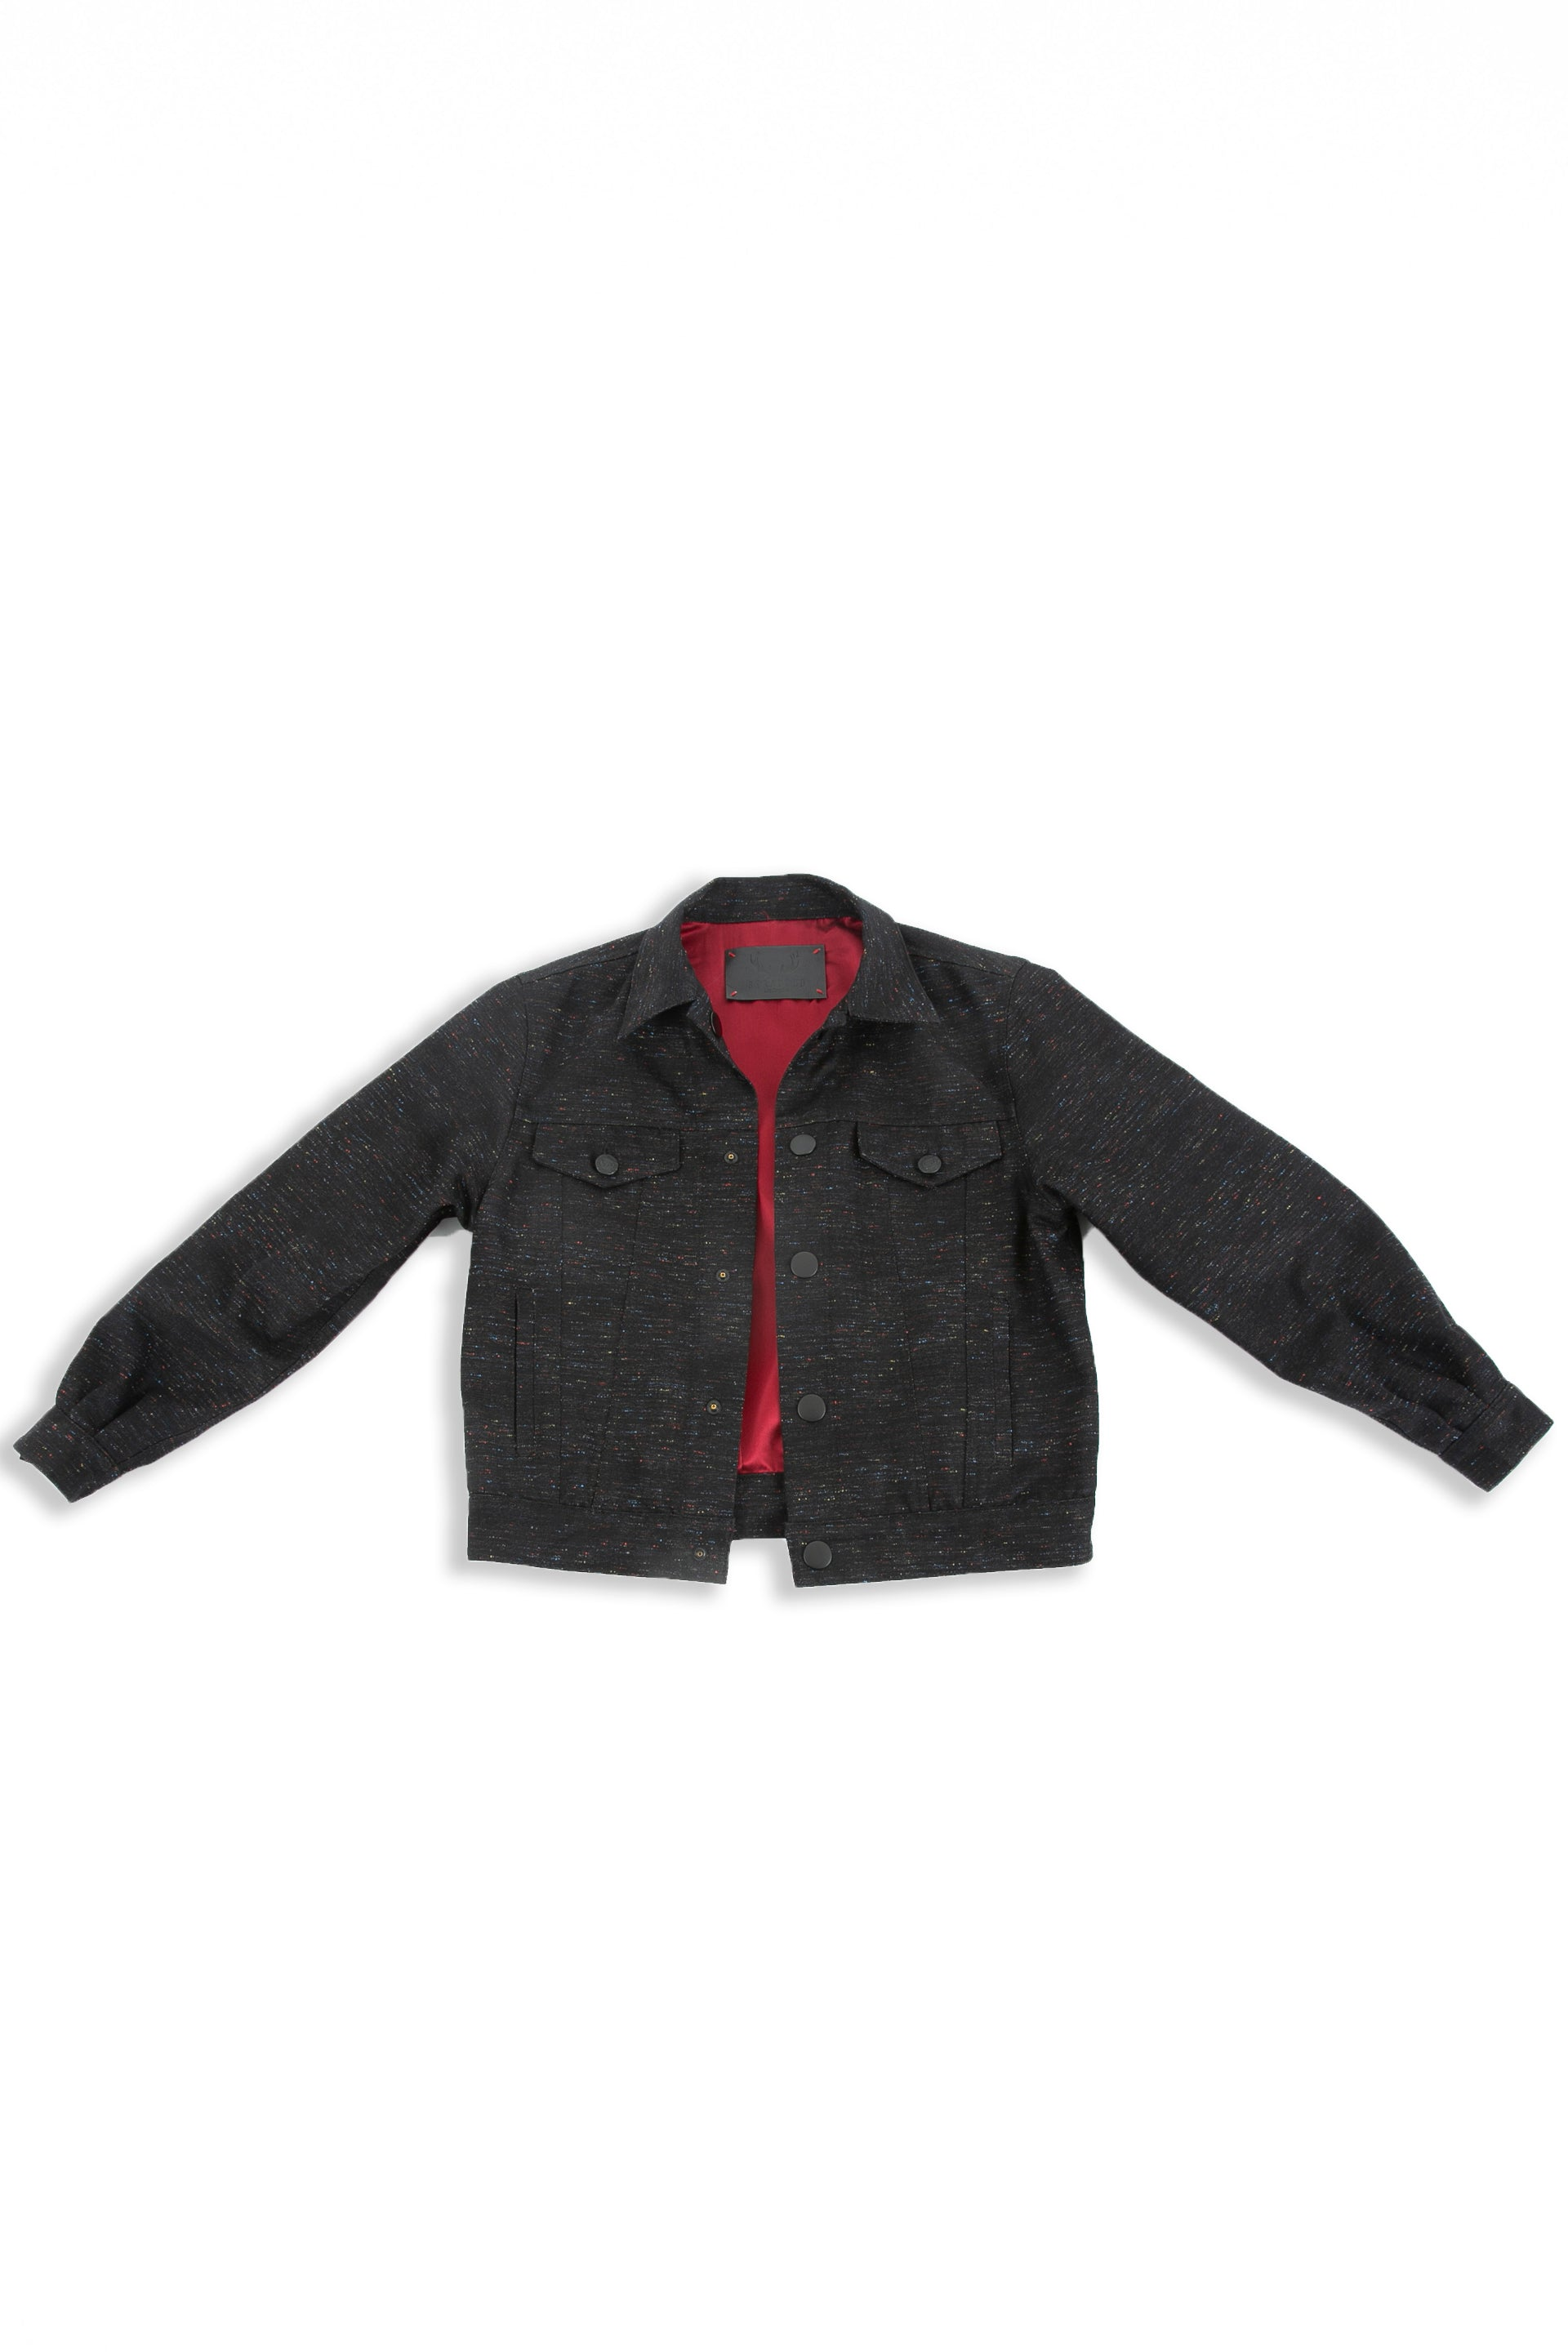 Front of Reversible Parlor black denim jacket